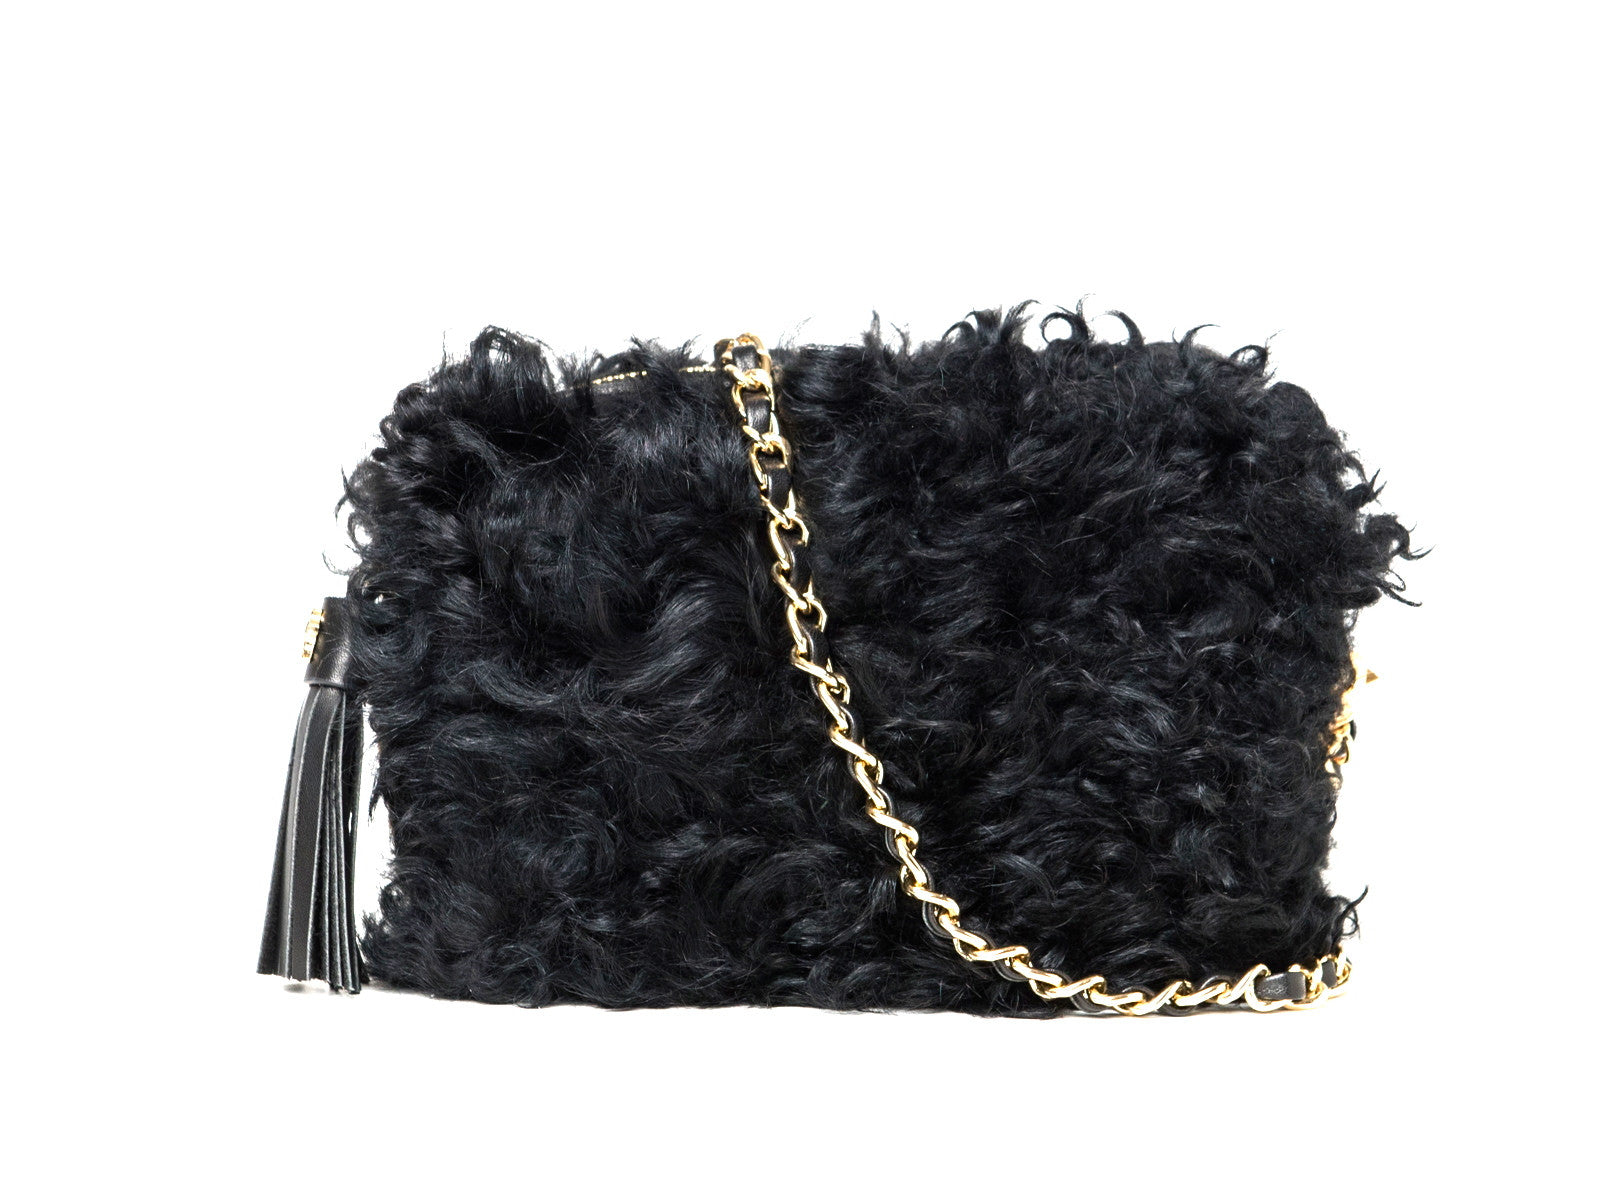 Fluffy Bluff - Black Sheep - PEDRO'S BLUFF - New Zealand Leather Bags & Accessories